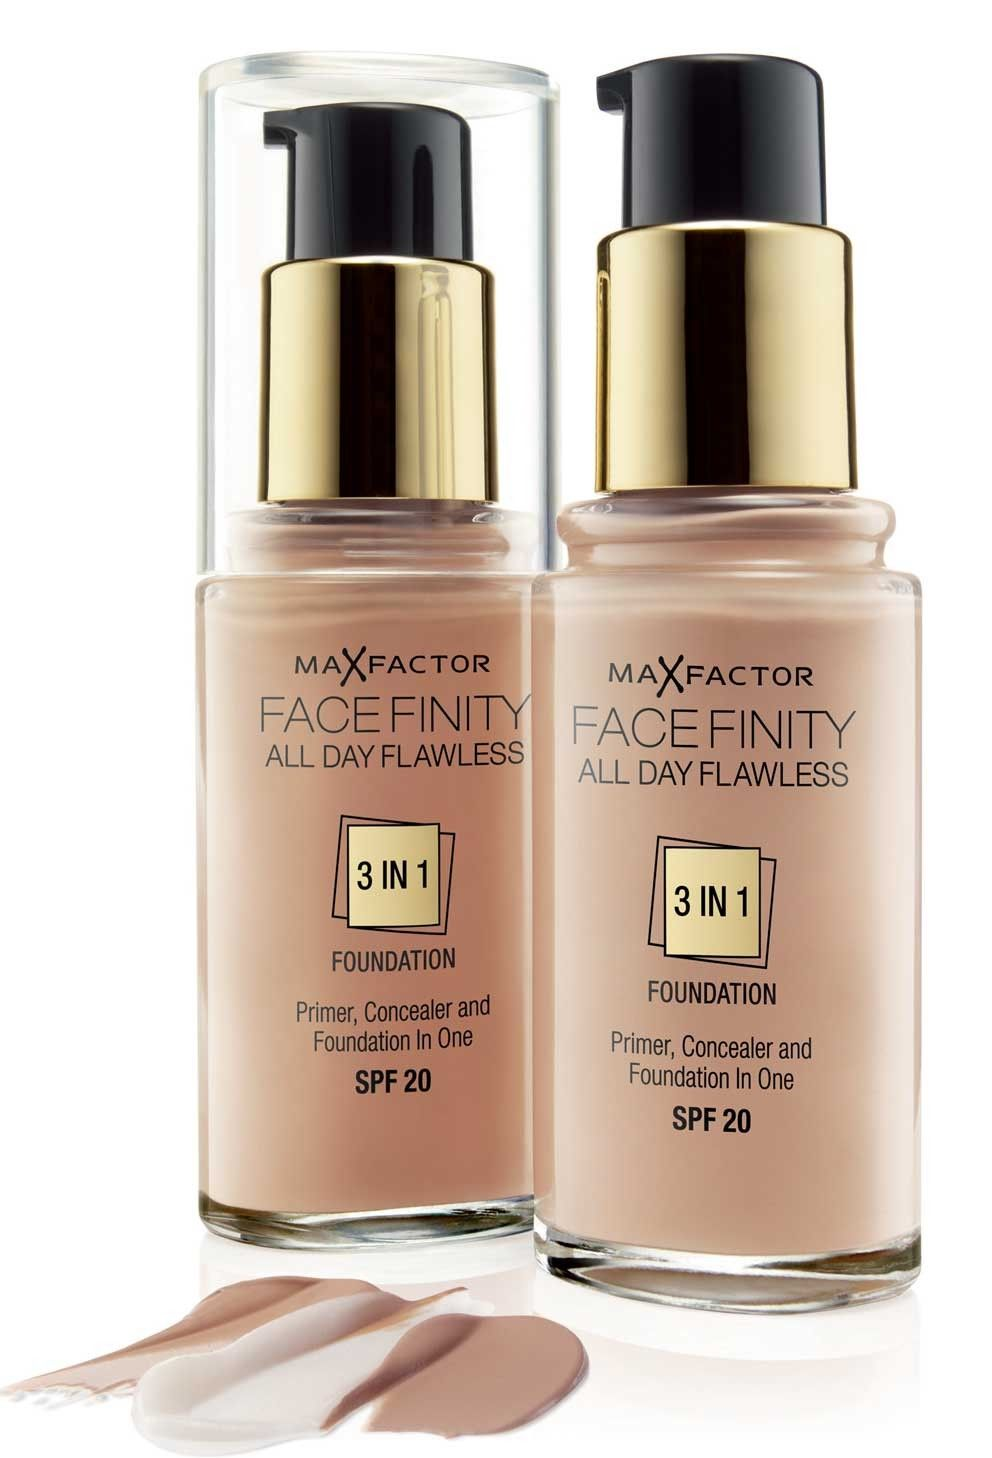 maquillaje max factor facefinity